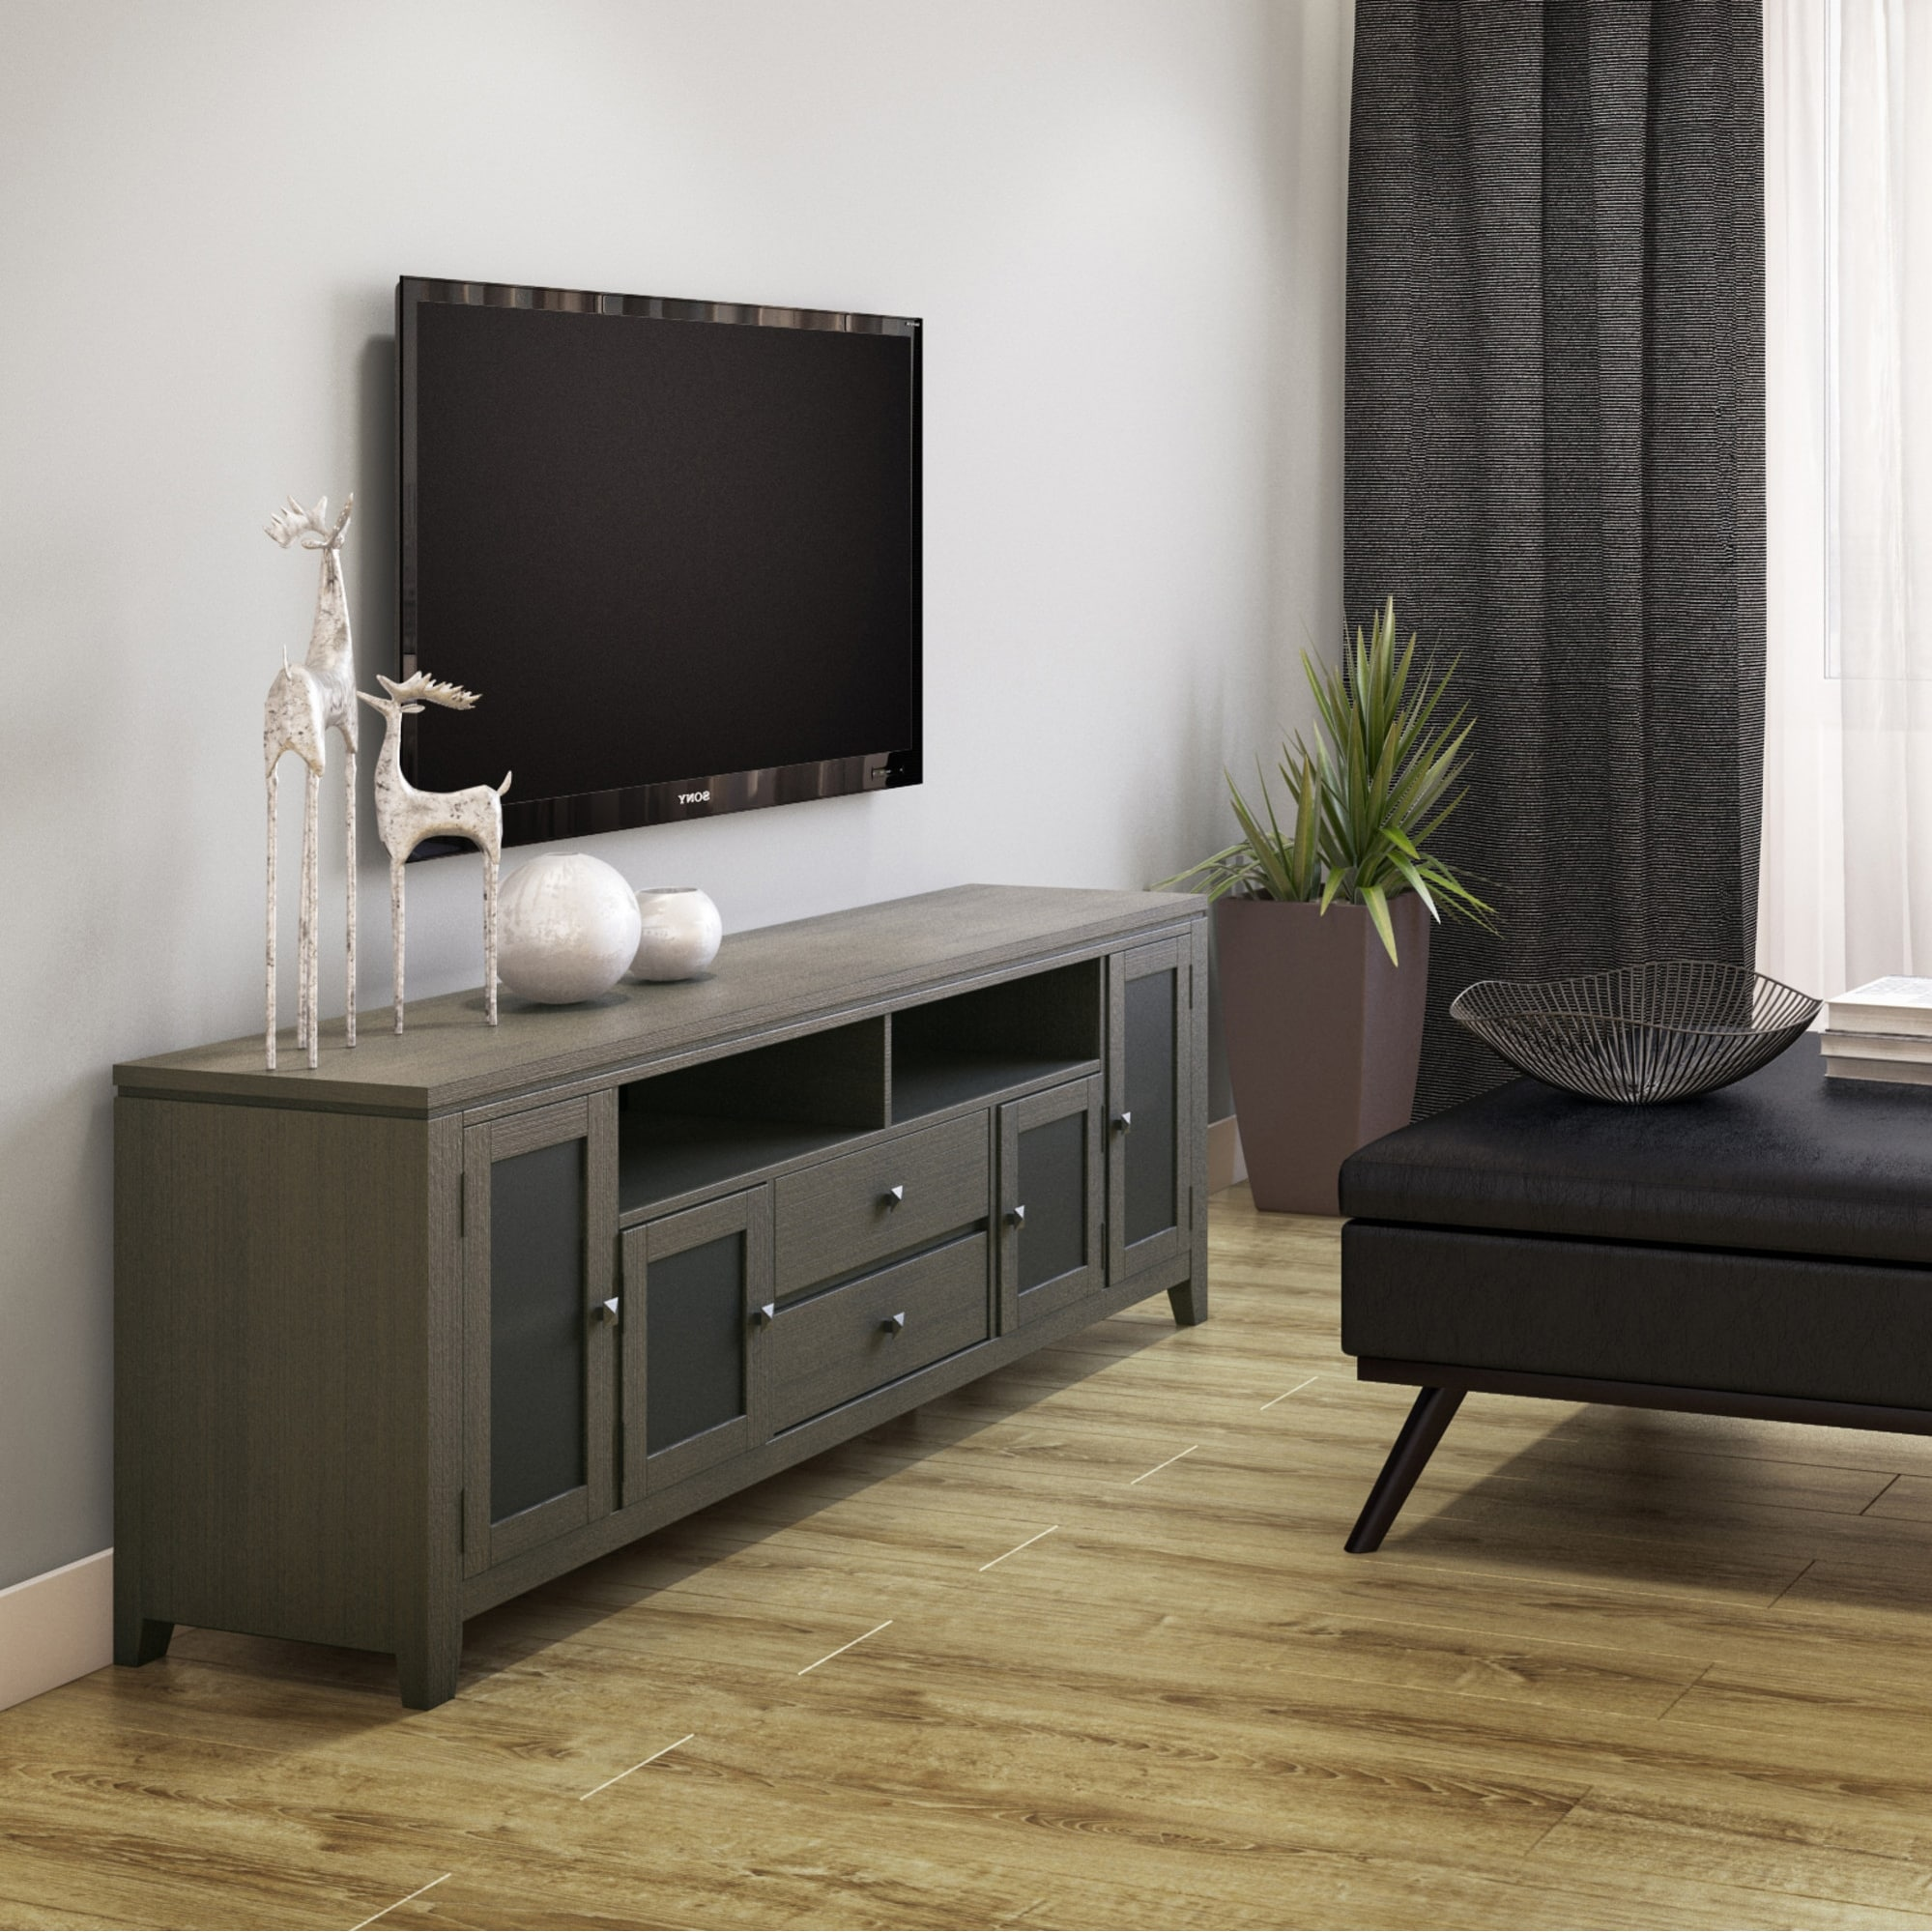 Shop Wyndenhall Essex Solid Wood 72 Inch Wide Contemporary Tv Media Stand For Tvs Up To 80 Inches Overstock 8772089